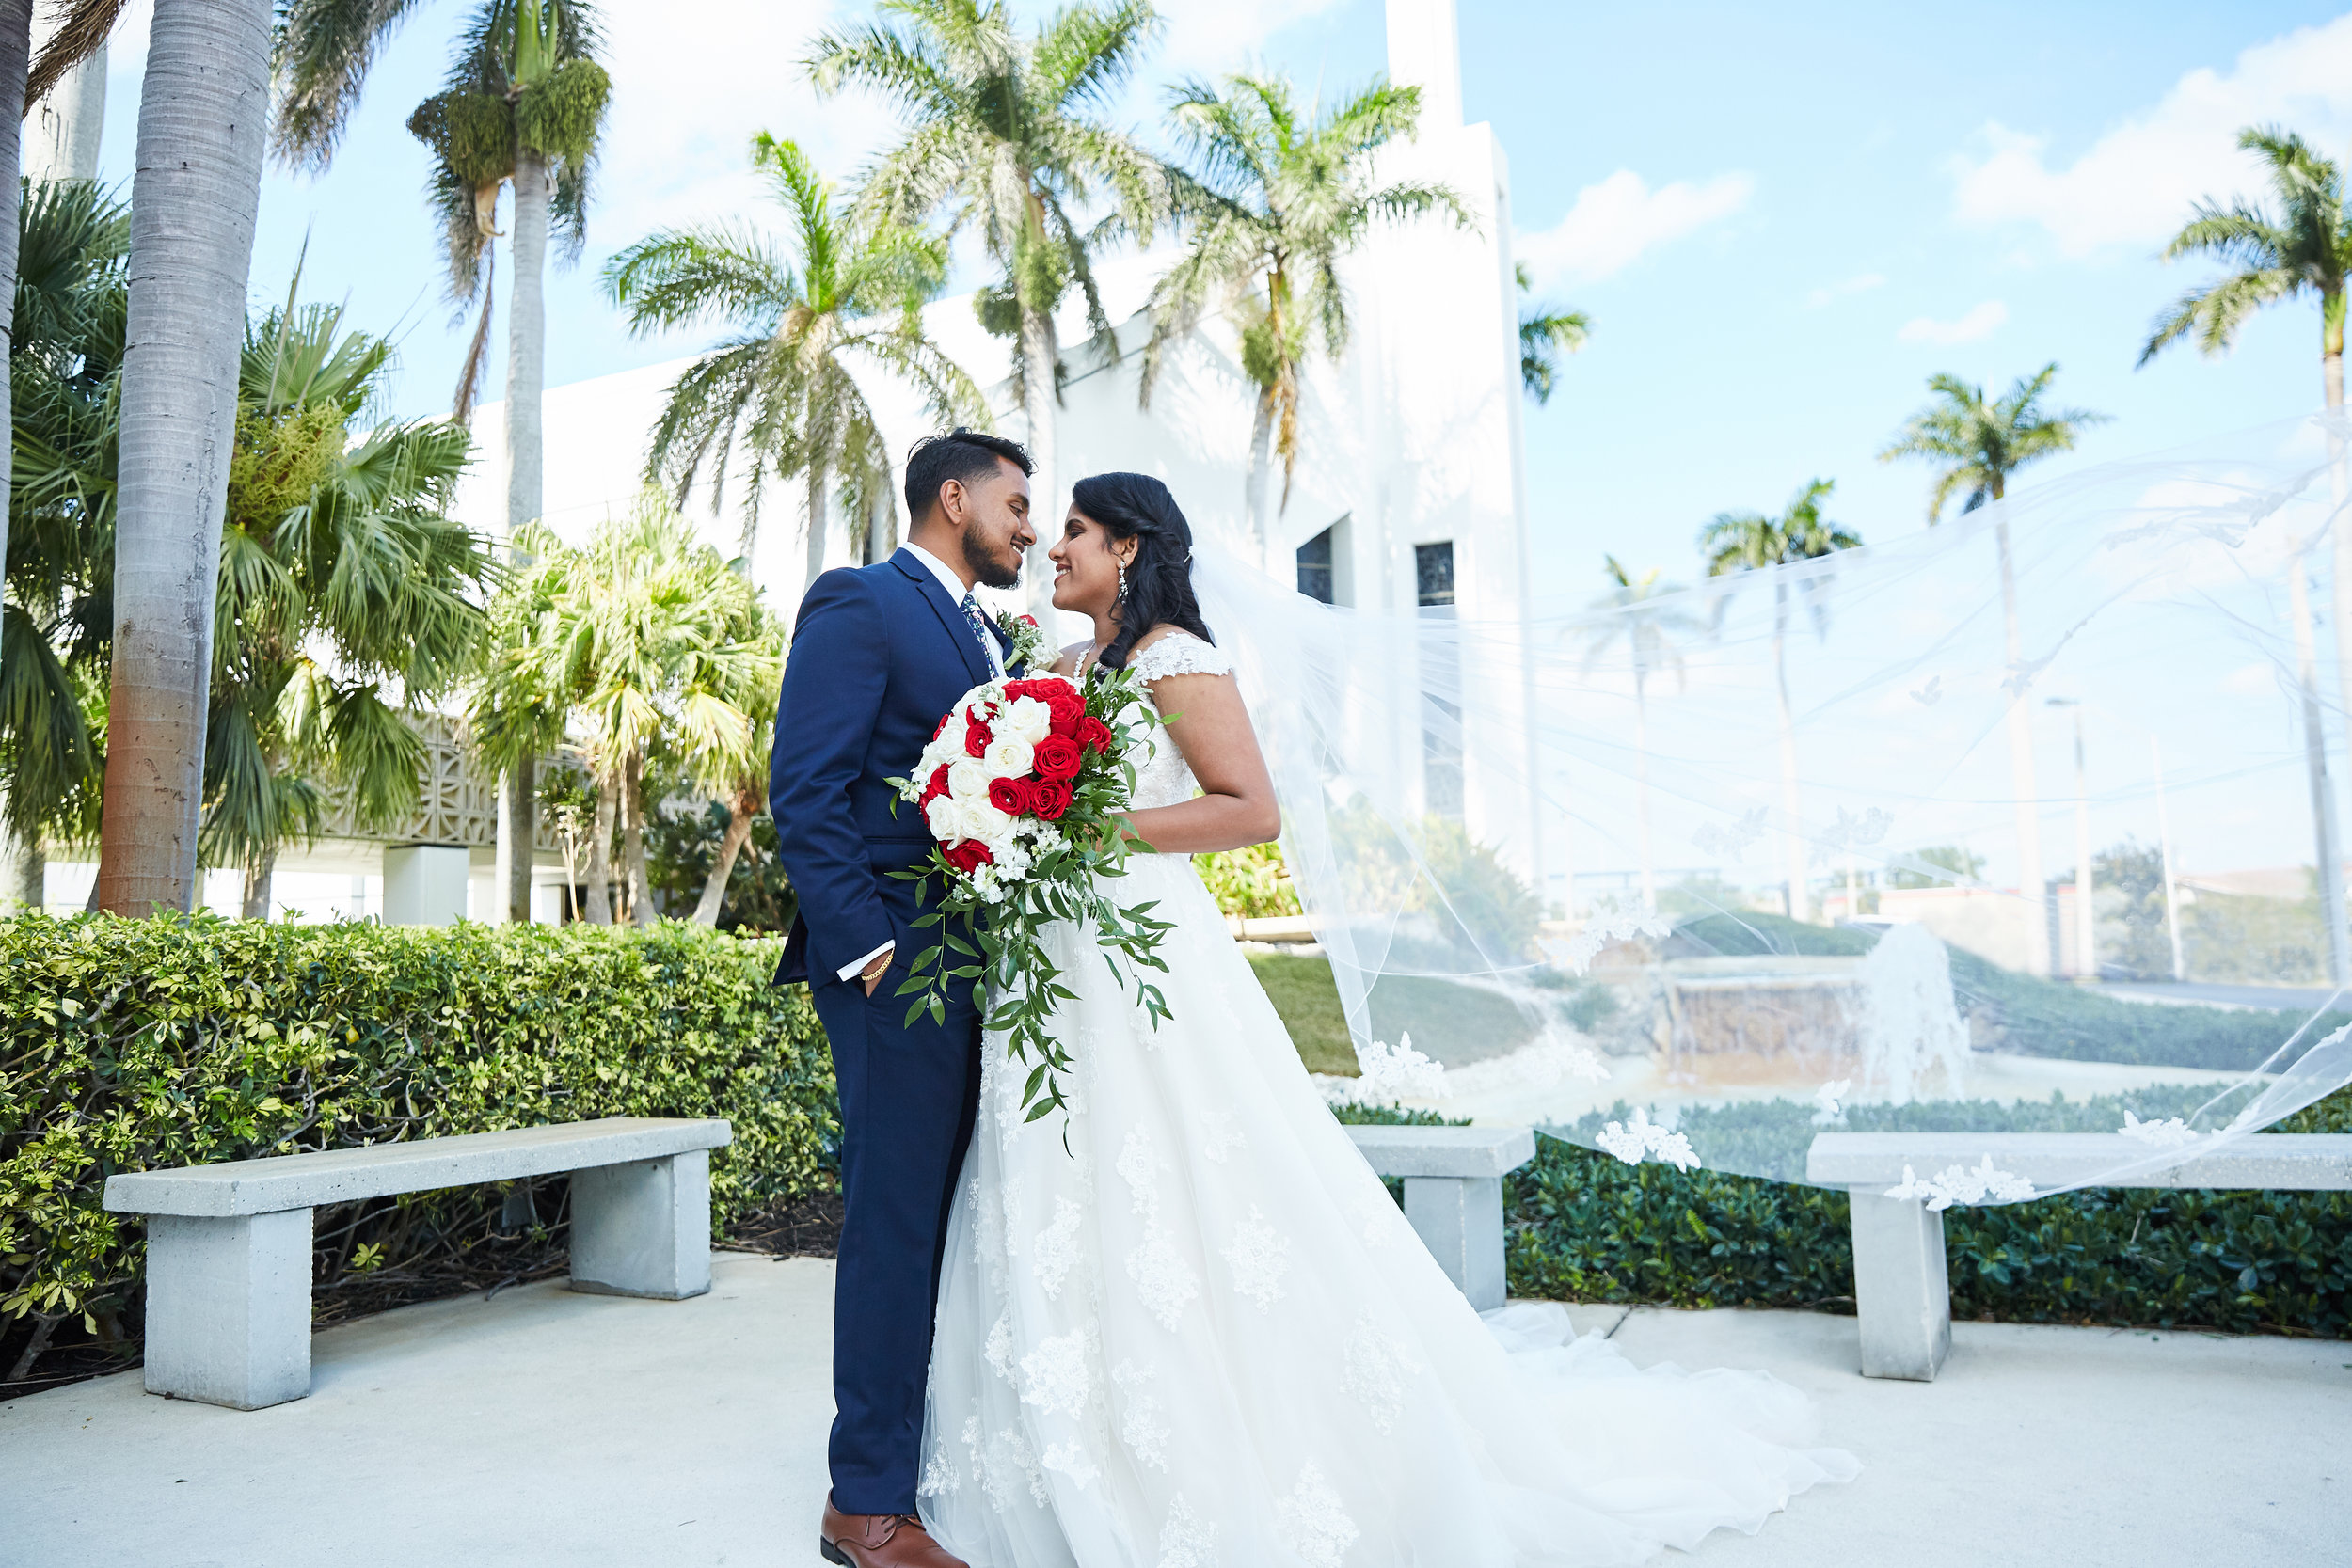 A wedding, engagement, love, newlywed image of a bride in her wedding dress -taken by Miami Wedding Photographer, Javier Edwards of El Roi Photo, in Miami, Florida, for a Miami Wedding